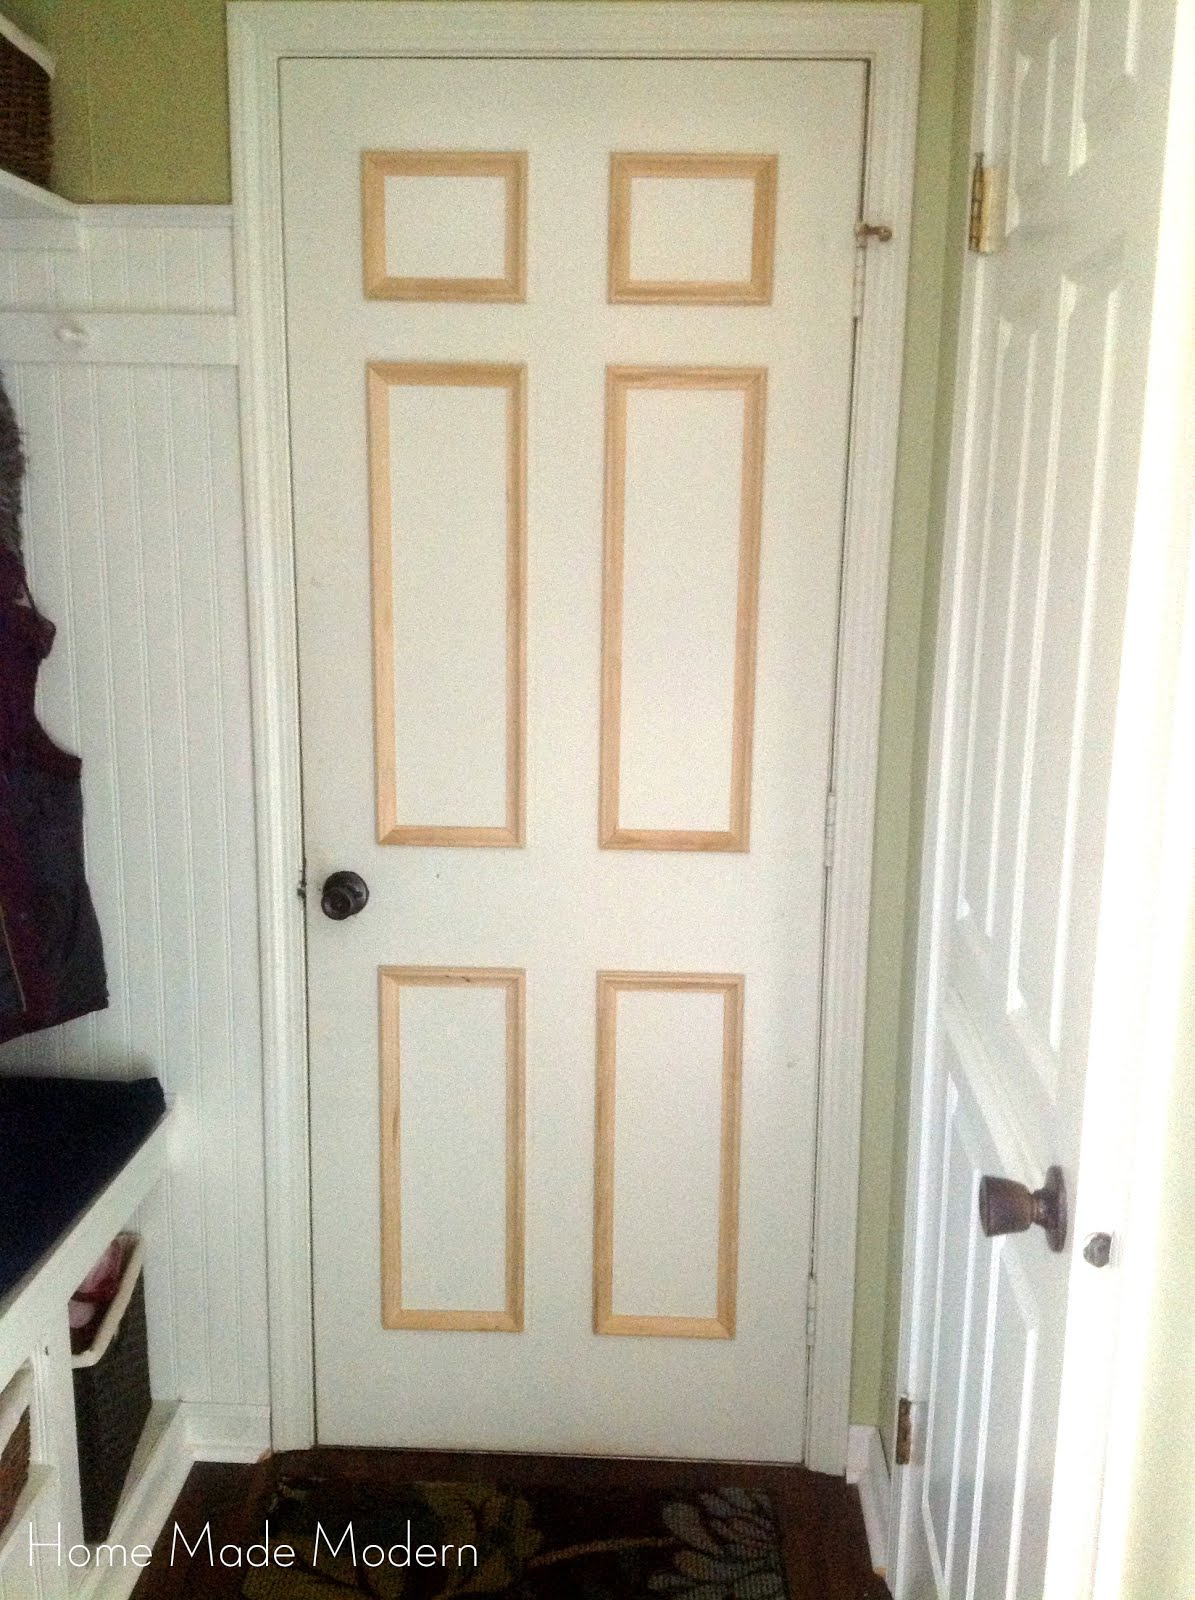 flat to traditional raised panel door Home Made Modern